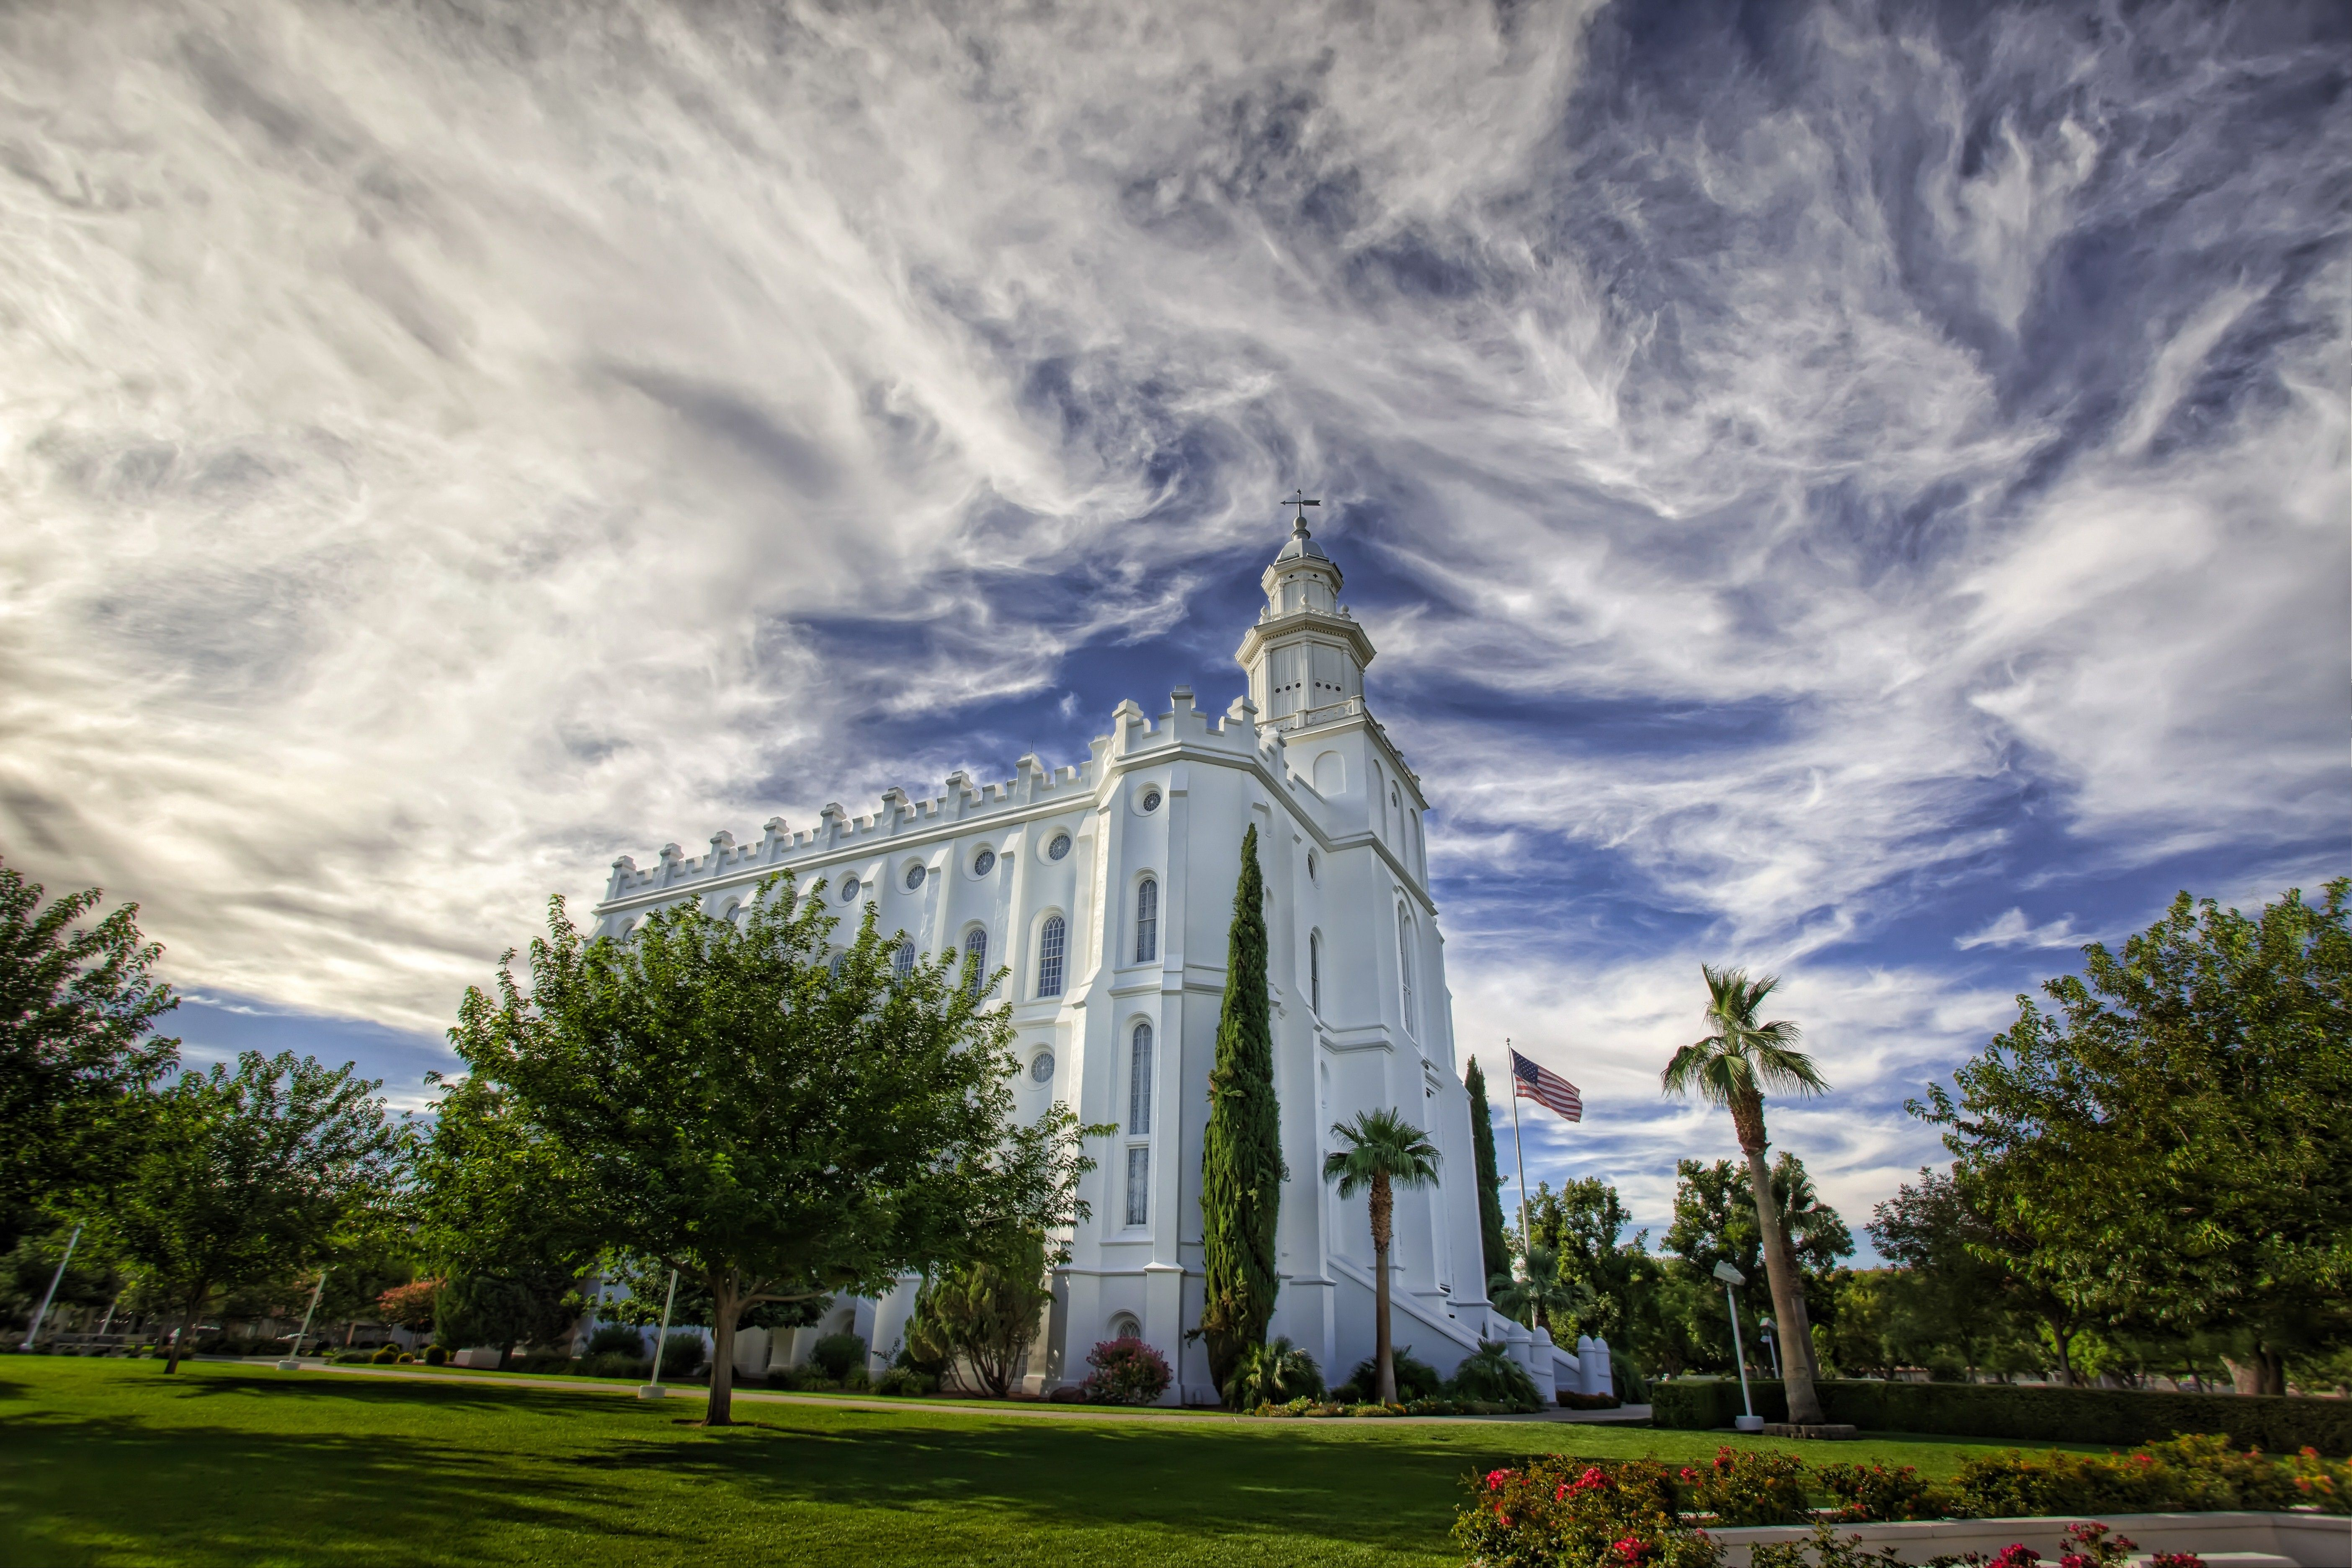 The St. George Utah Temple in daylight, including the entrance and scenery.